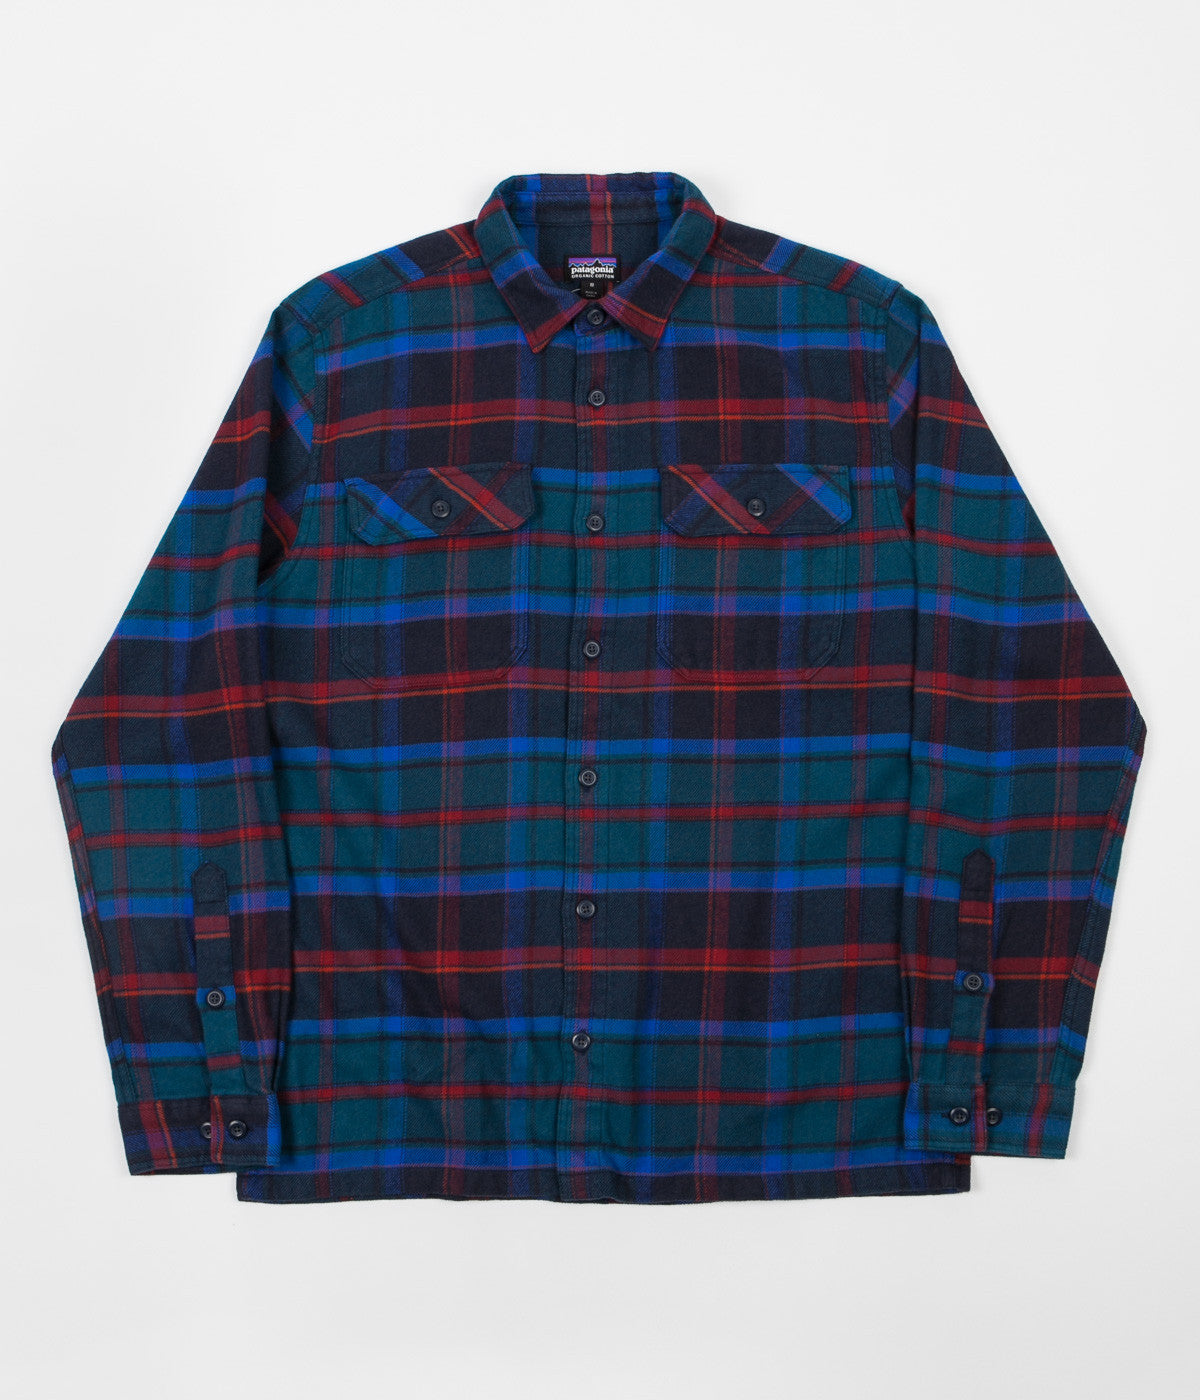 Patagonia Fjord Flannel Long Sleeve Shirt - Buckstop Plaid / Big Sur Blue